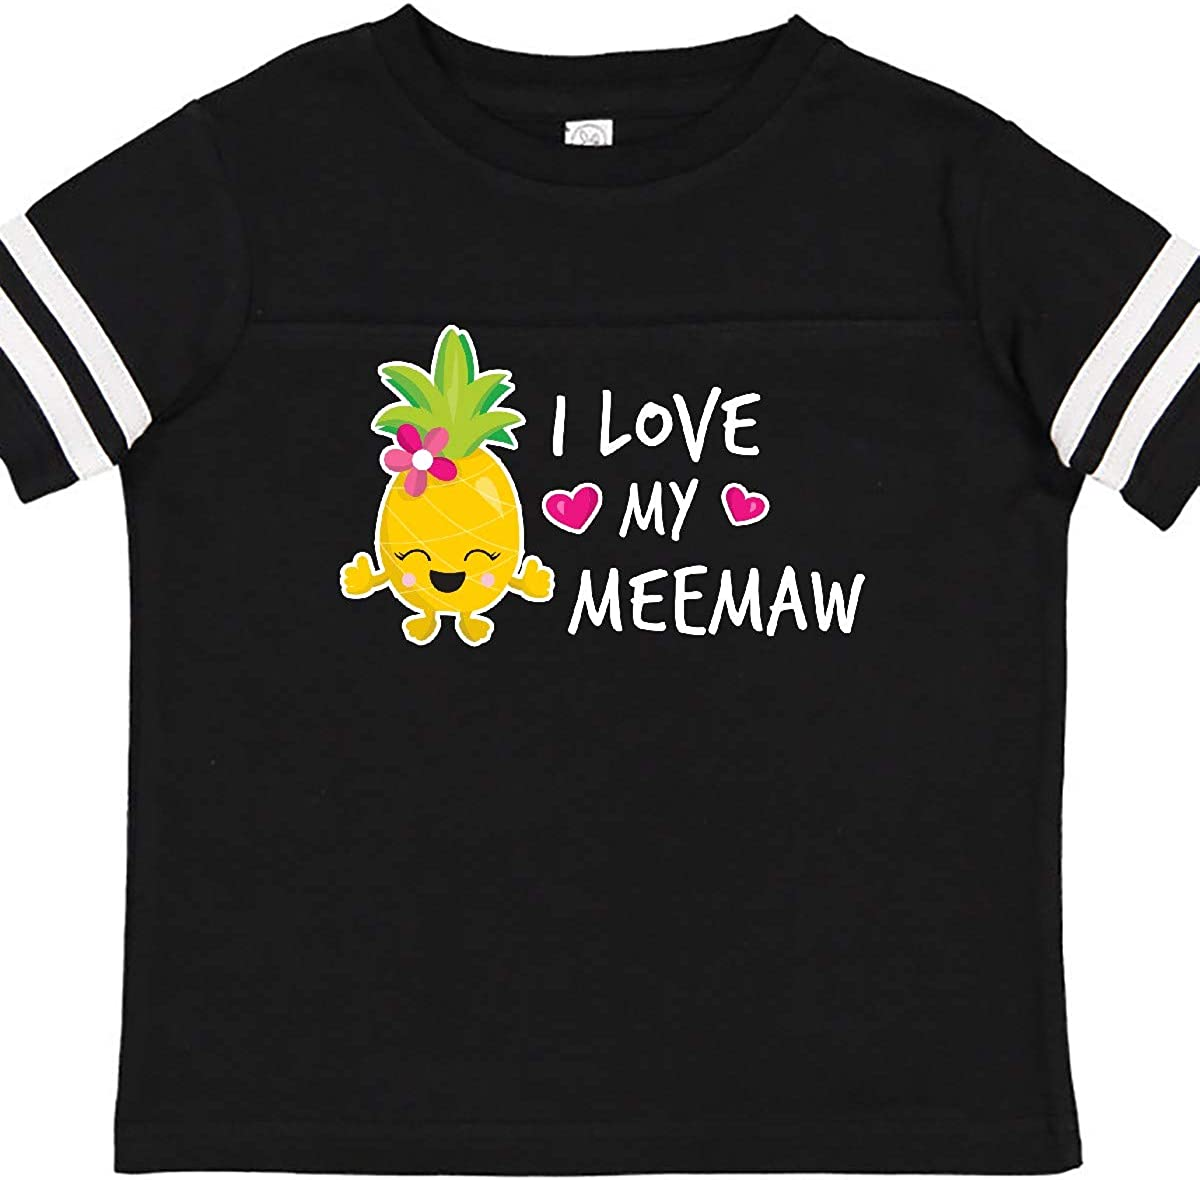 inktastic I Love My Meemaw with Pineapple Toddler T-Shirt